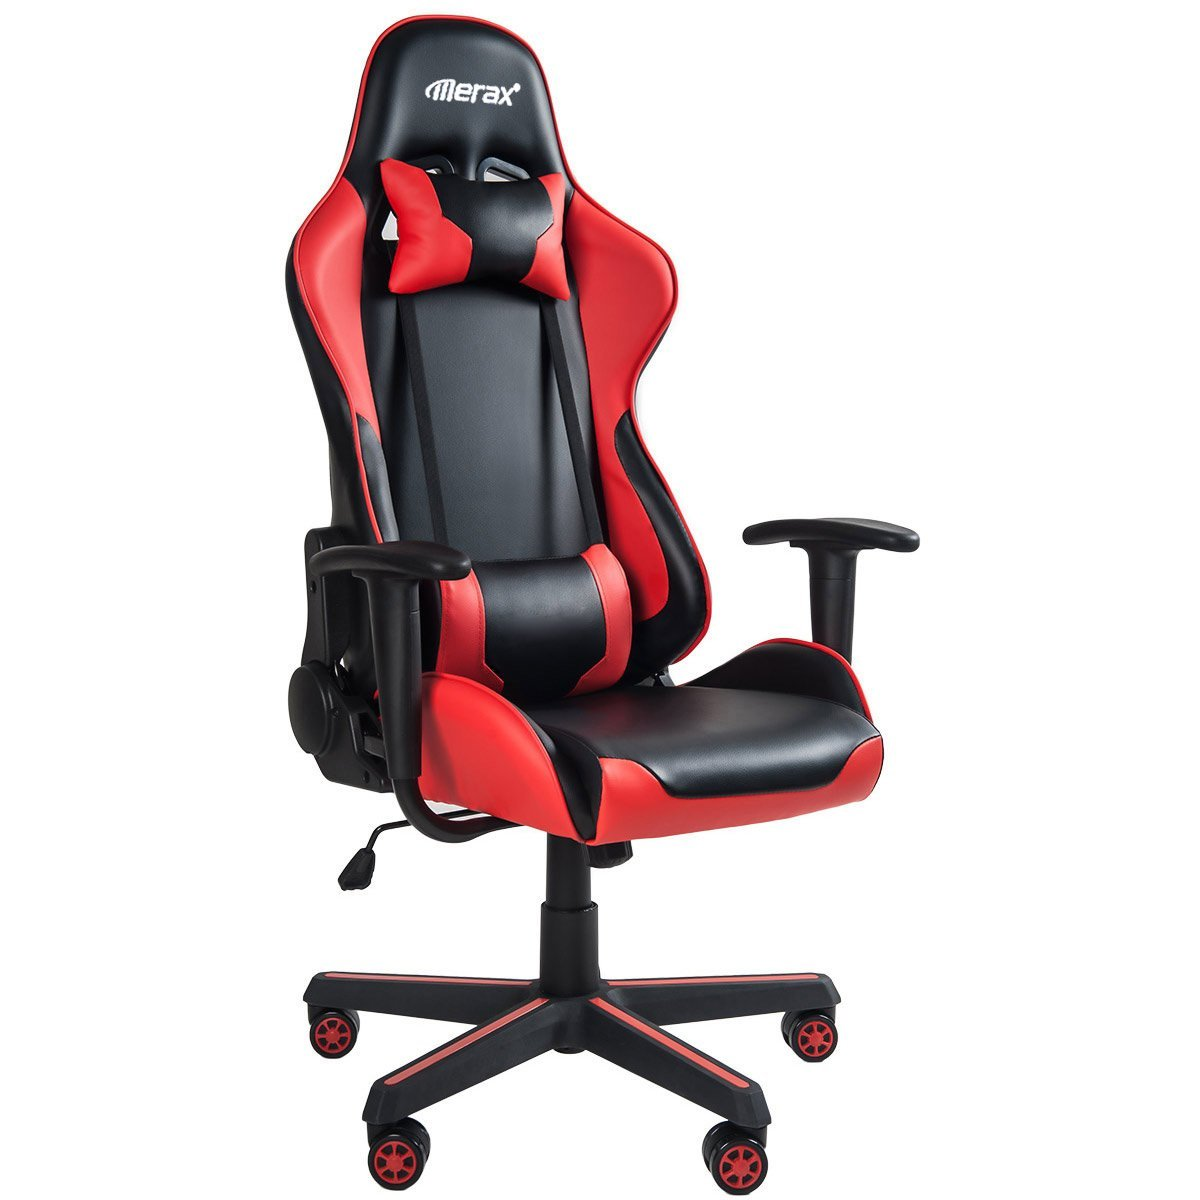 amusing xrocker adults chairs target best for armchair home video rocker walmart furniture ottoman pc ideas gaming one cheap game chair x xbox marvelous